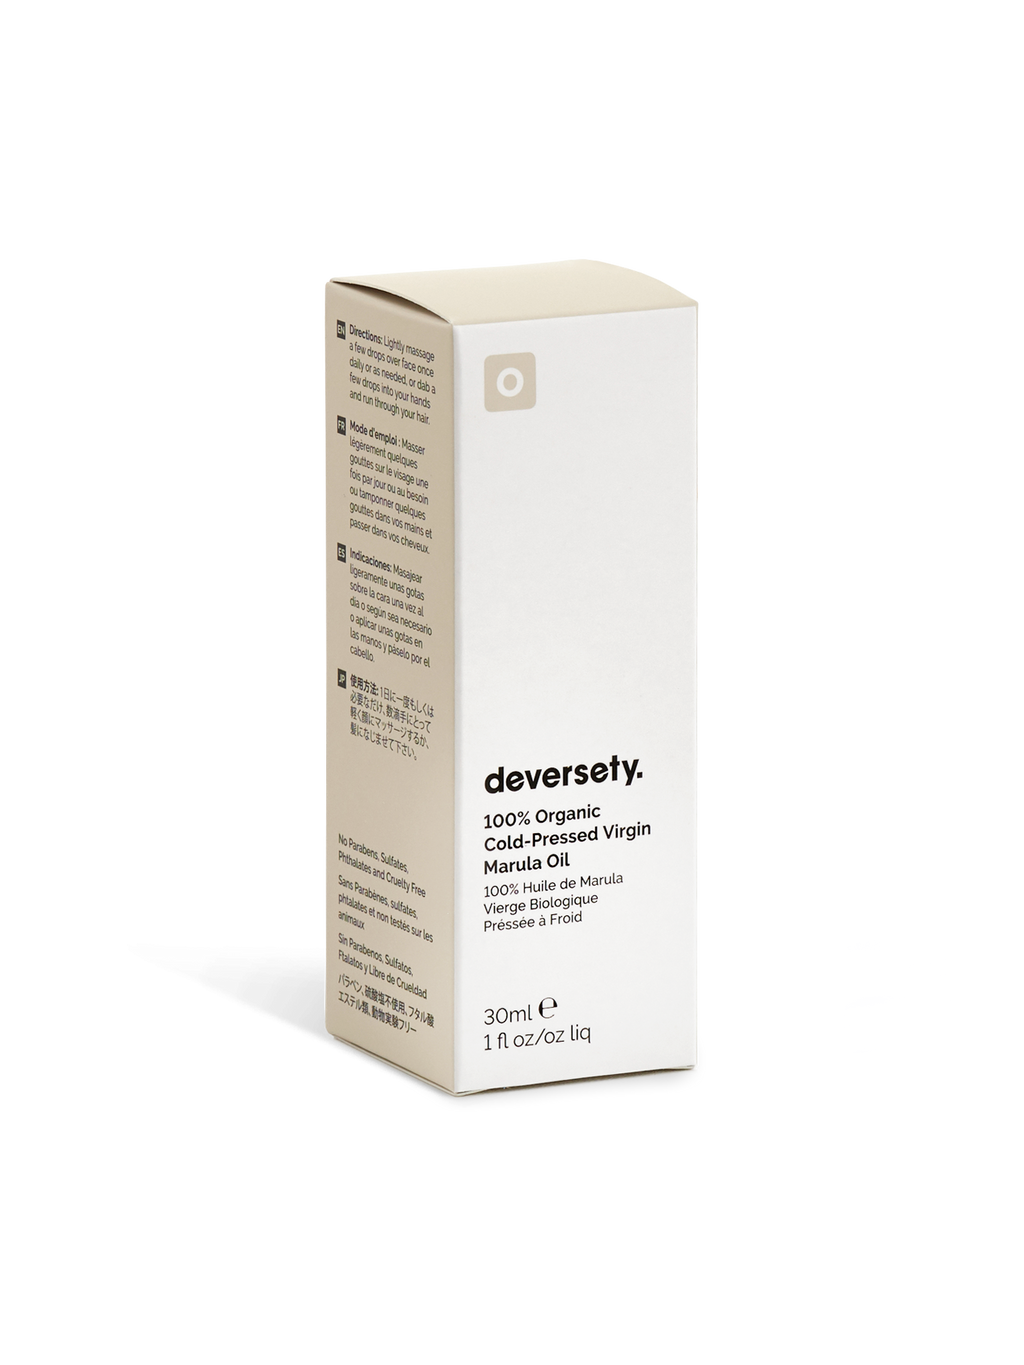 Deversety | 100% Organic Cold-Pressed Marula Oil - 30ml